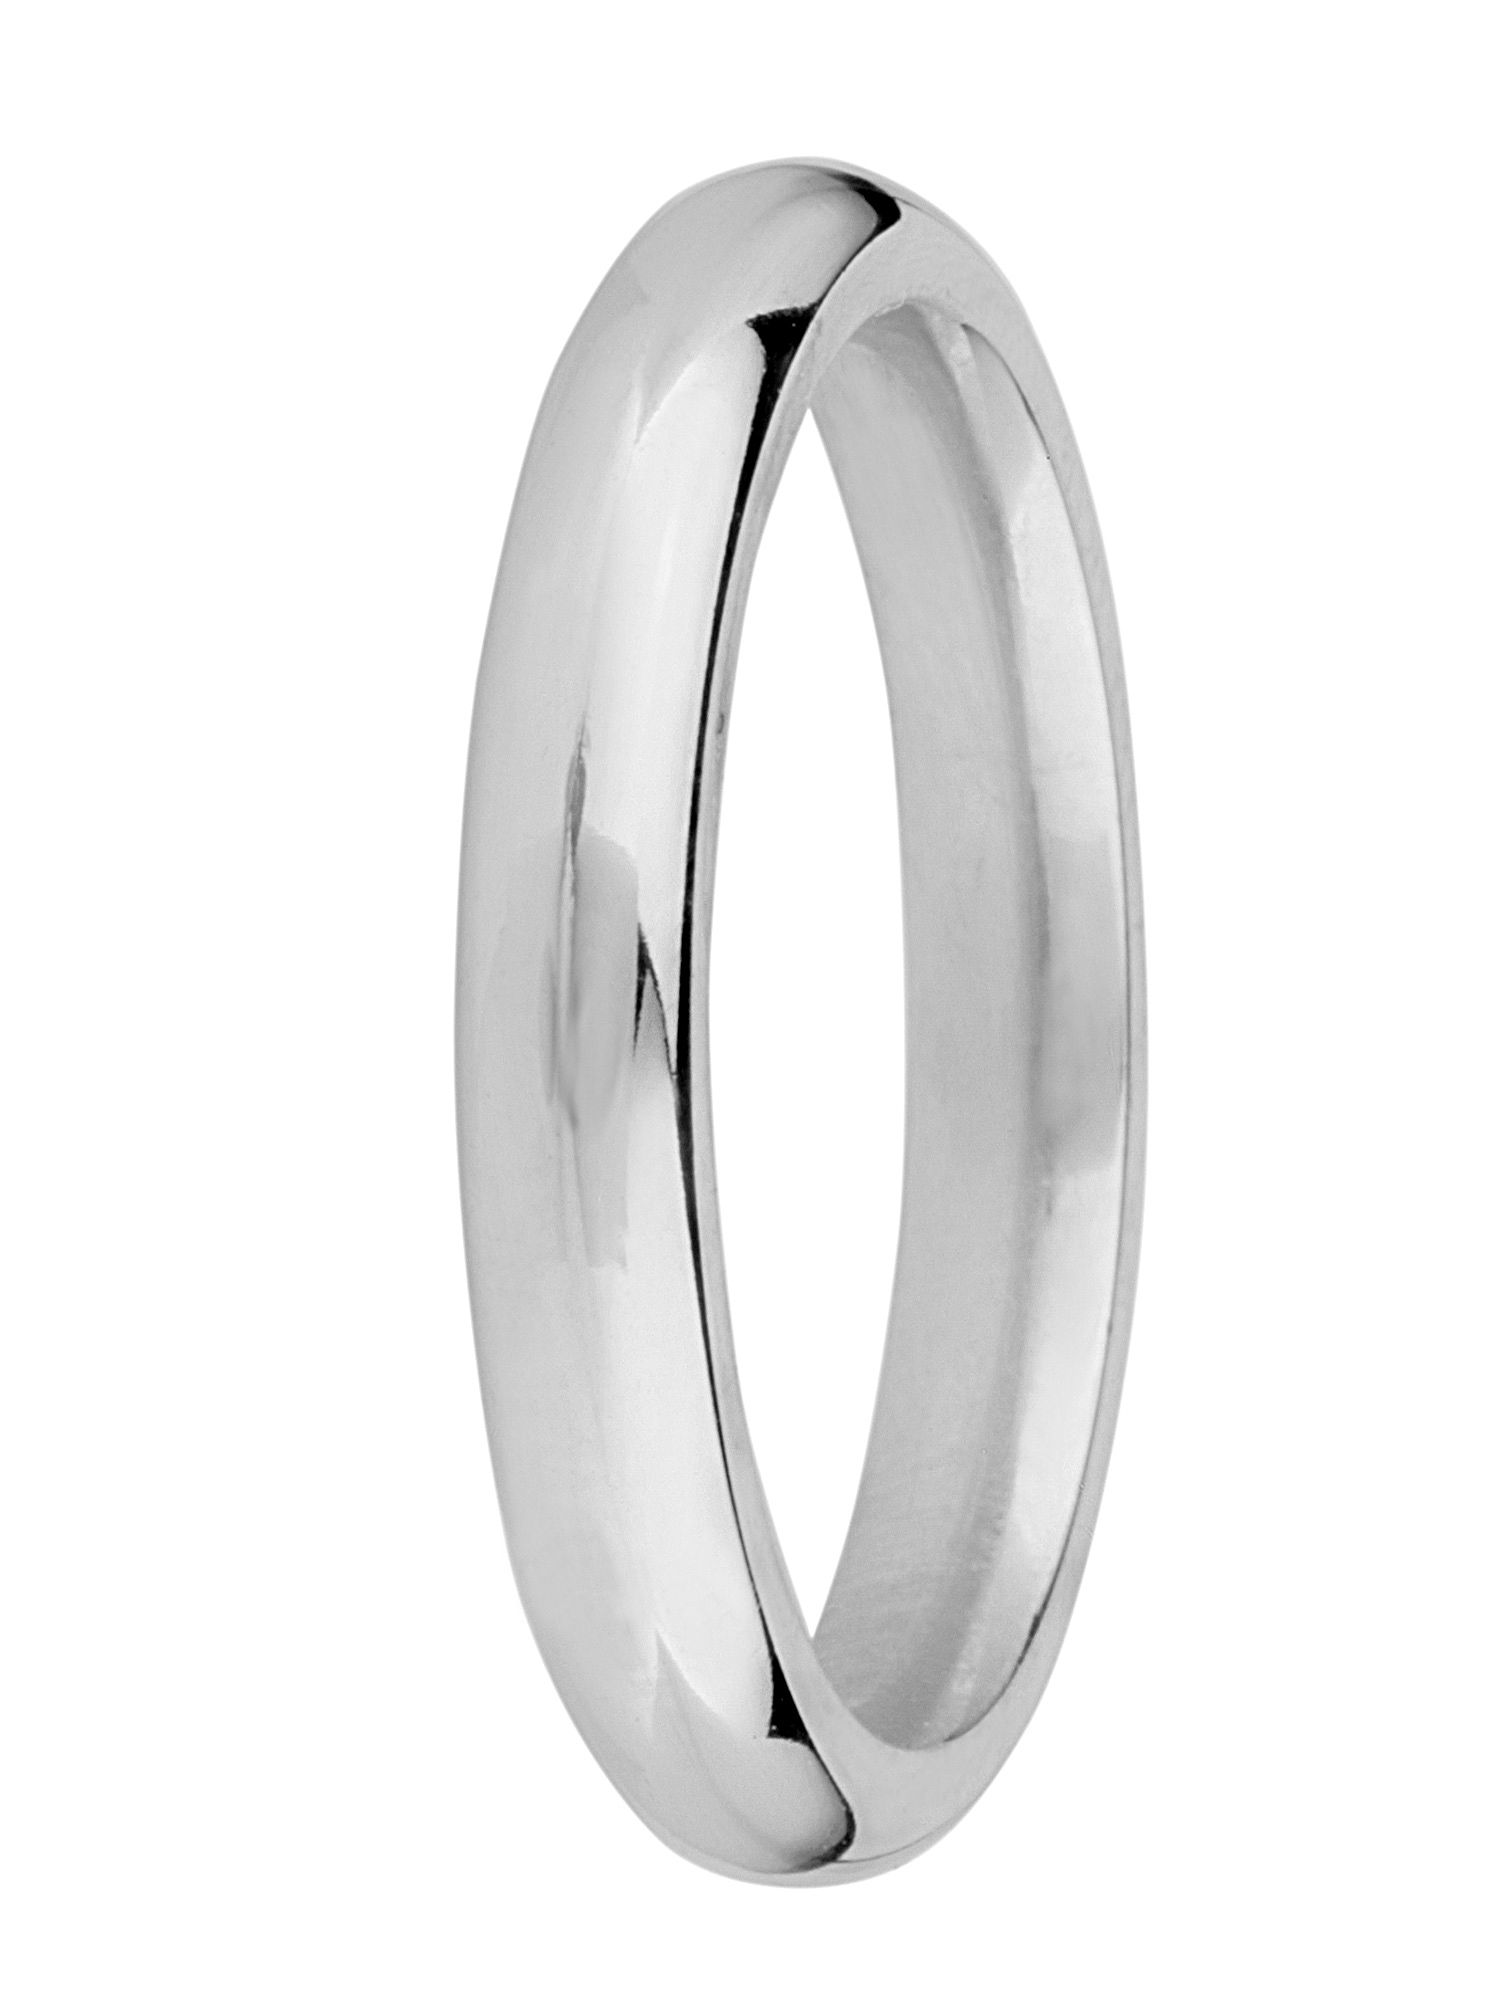 Brides 9ct gold 3mm court wedding ring White Gold